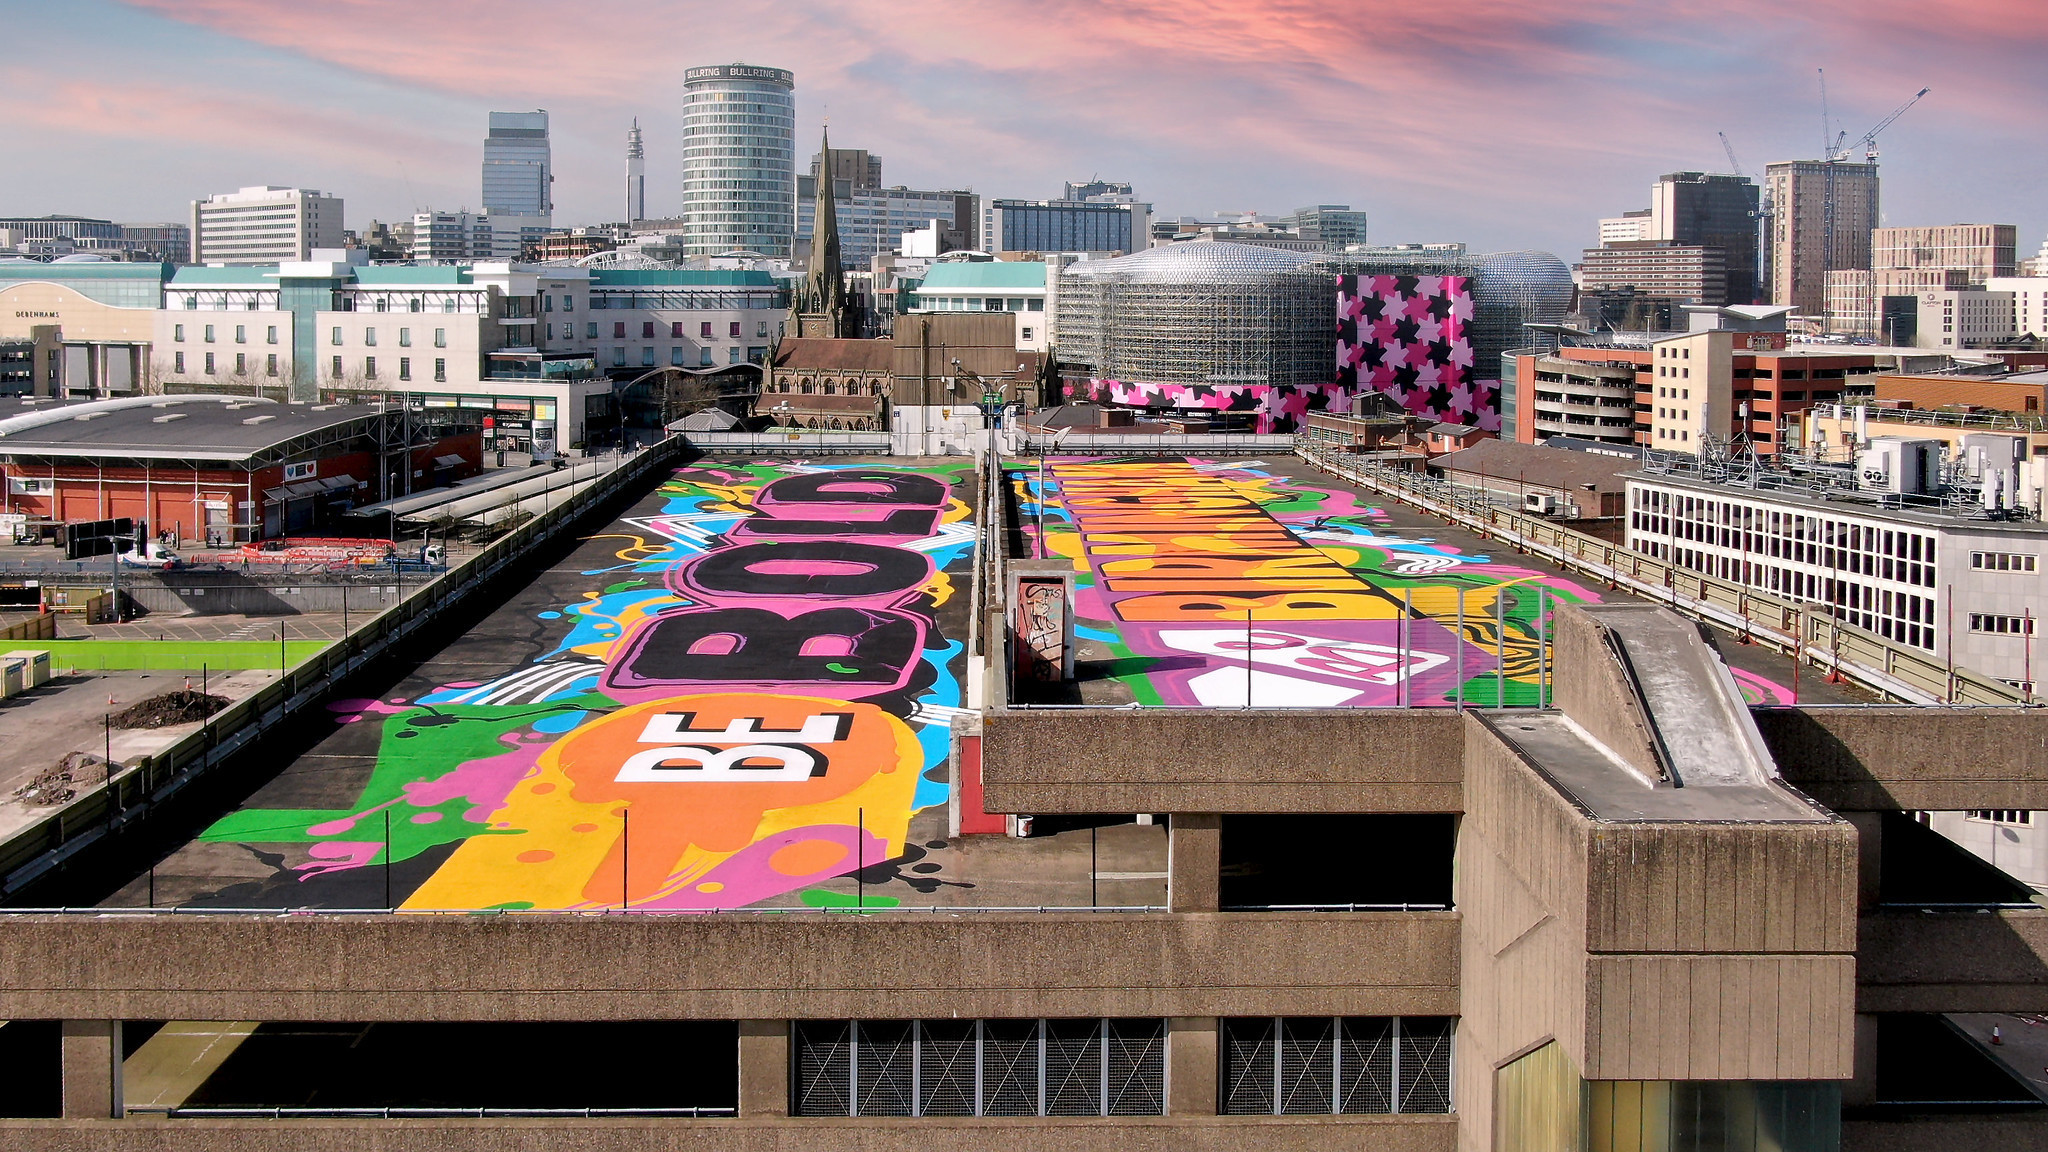 Jobs and Skills Academy launched to help public land Birmingham 2022-adjacent jobs